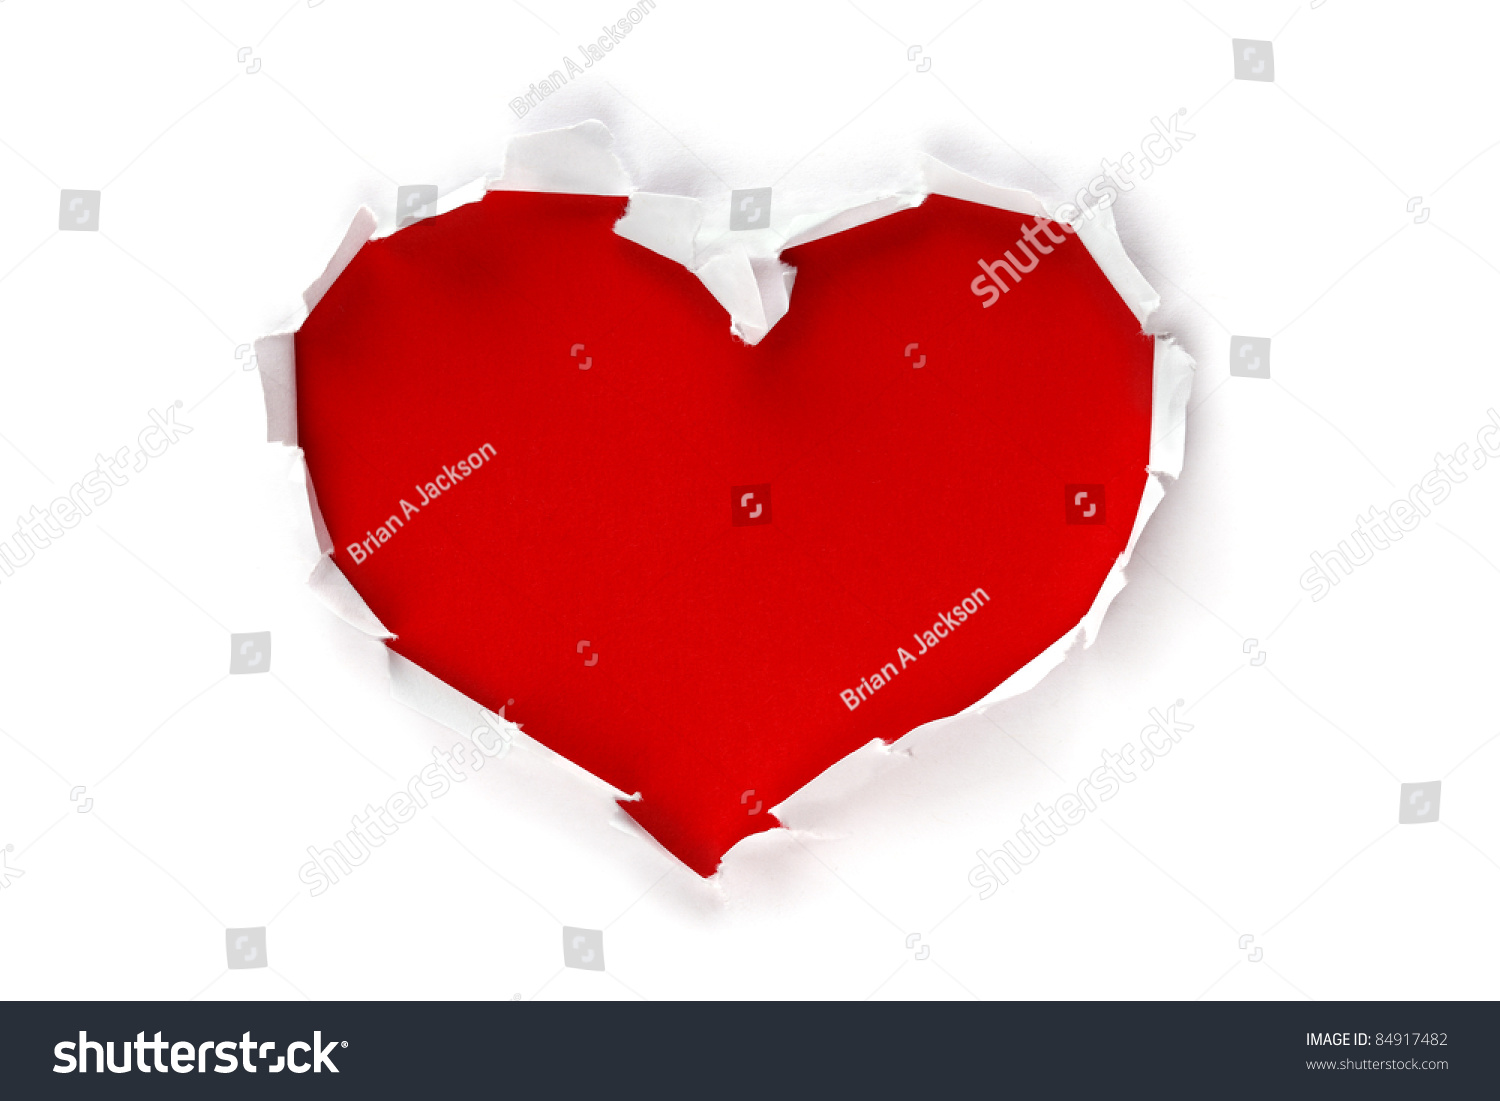 White torn paper heart shape symbol stock photo 84917482 white torn paper in heart shape symbol over red background for message biocorpaavc